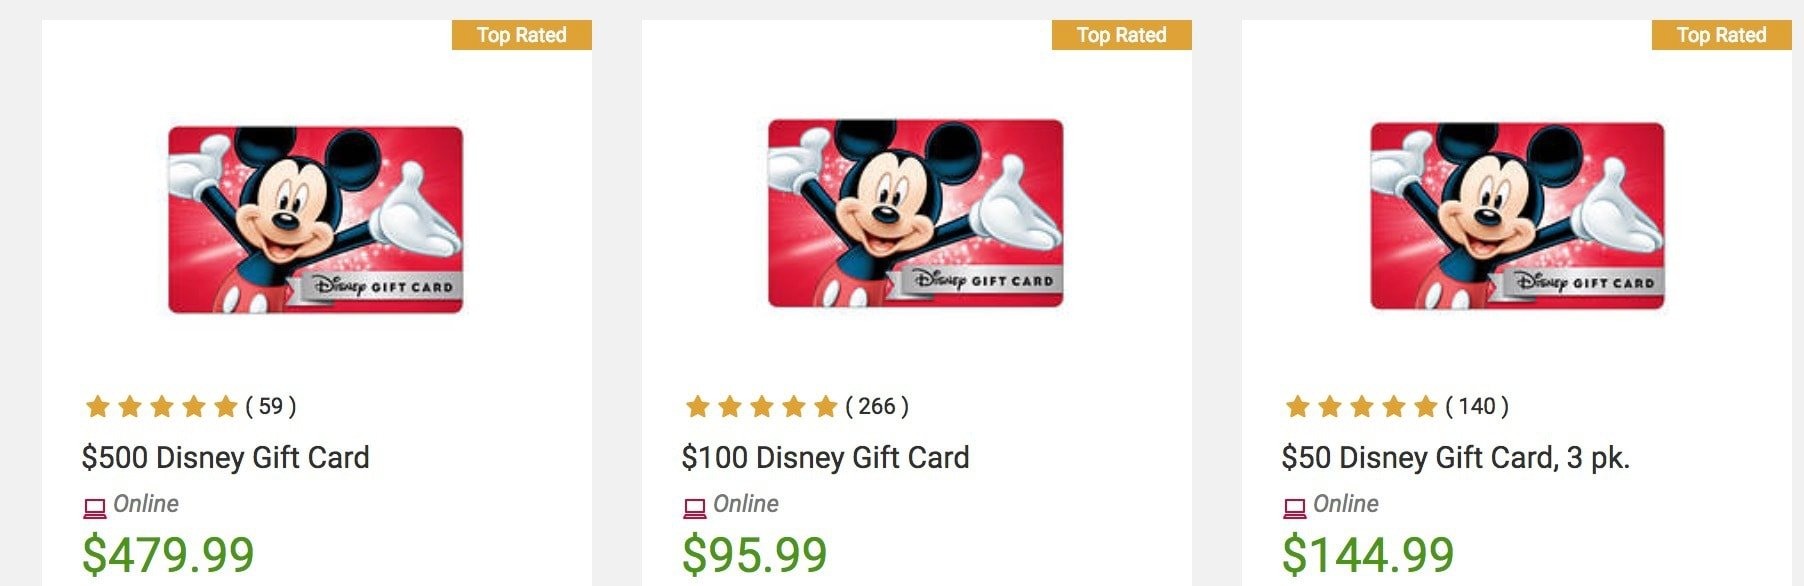 Bj's Discount Disney Gift Card